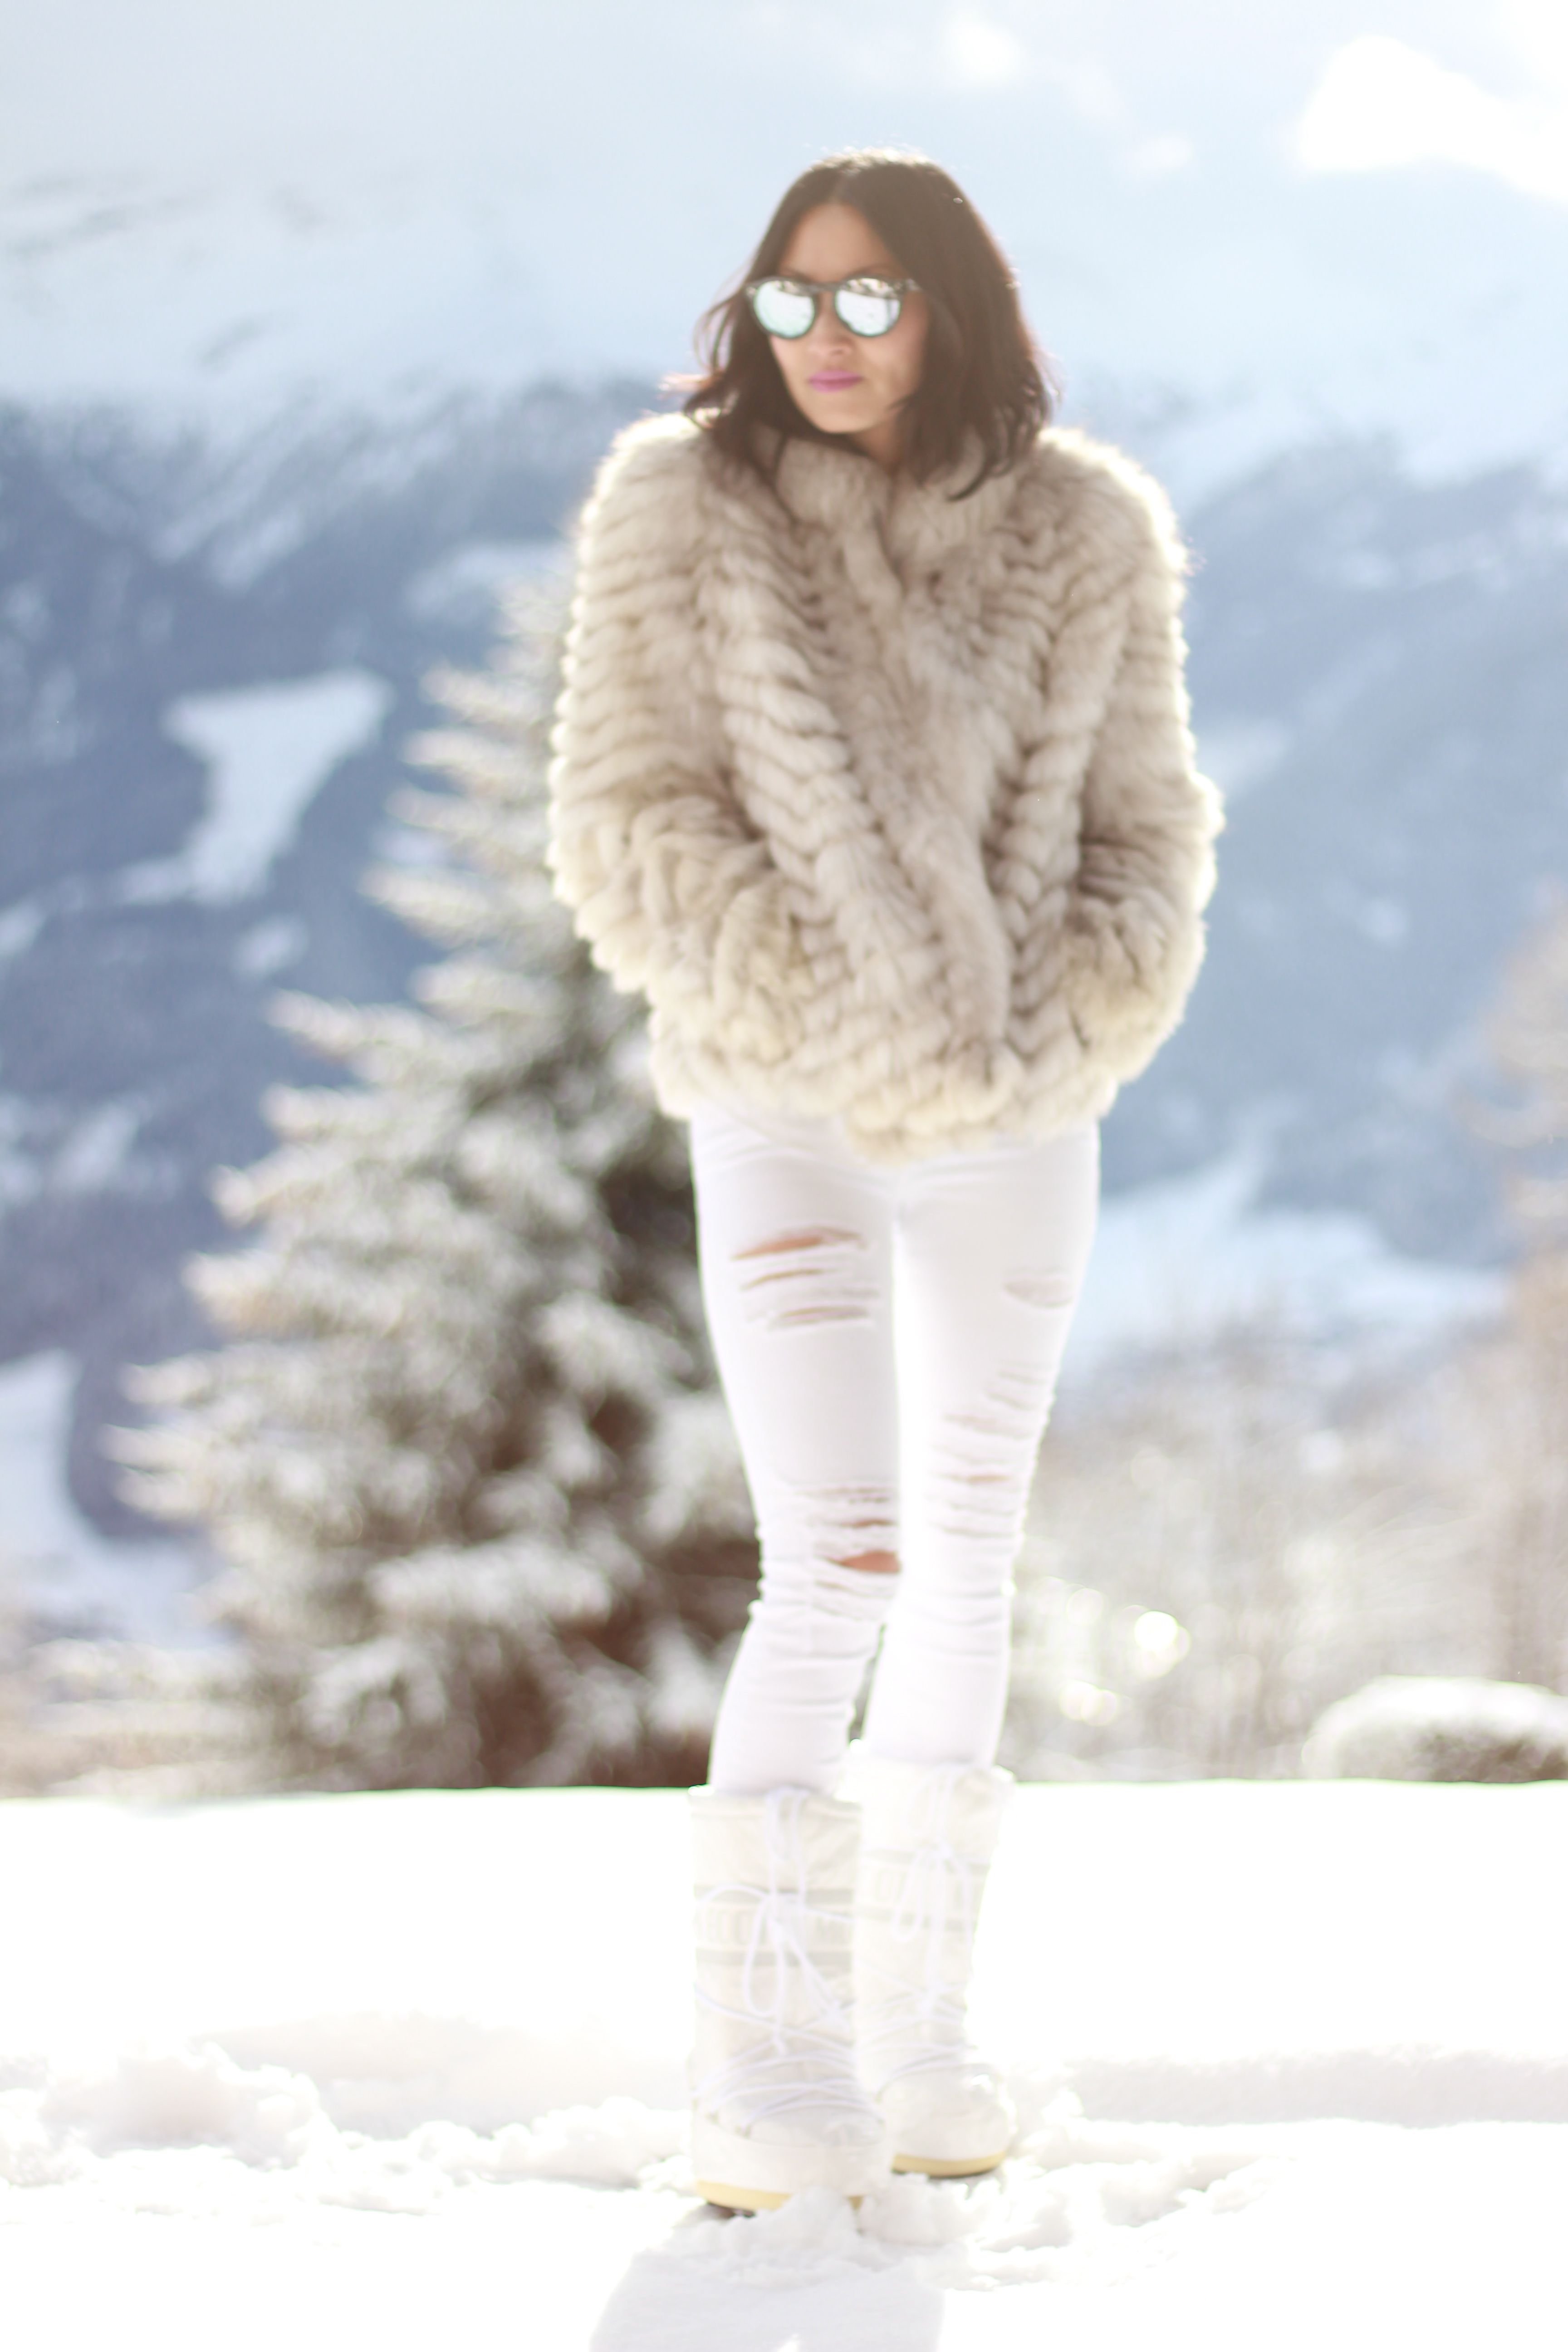 Women's Beige Fur Jacket, White Ripped Skinny Jeans, White Snow Boots, Grey  Sunglasses